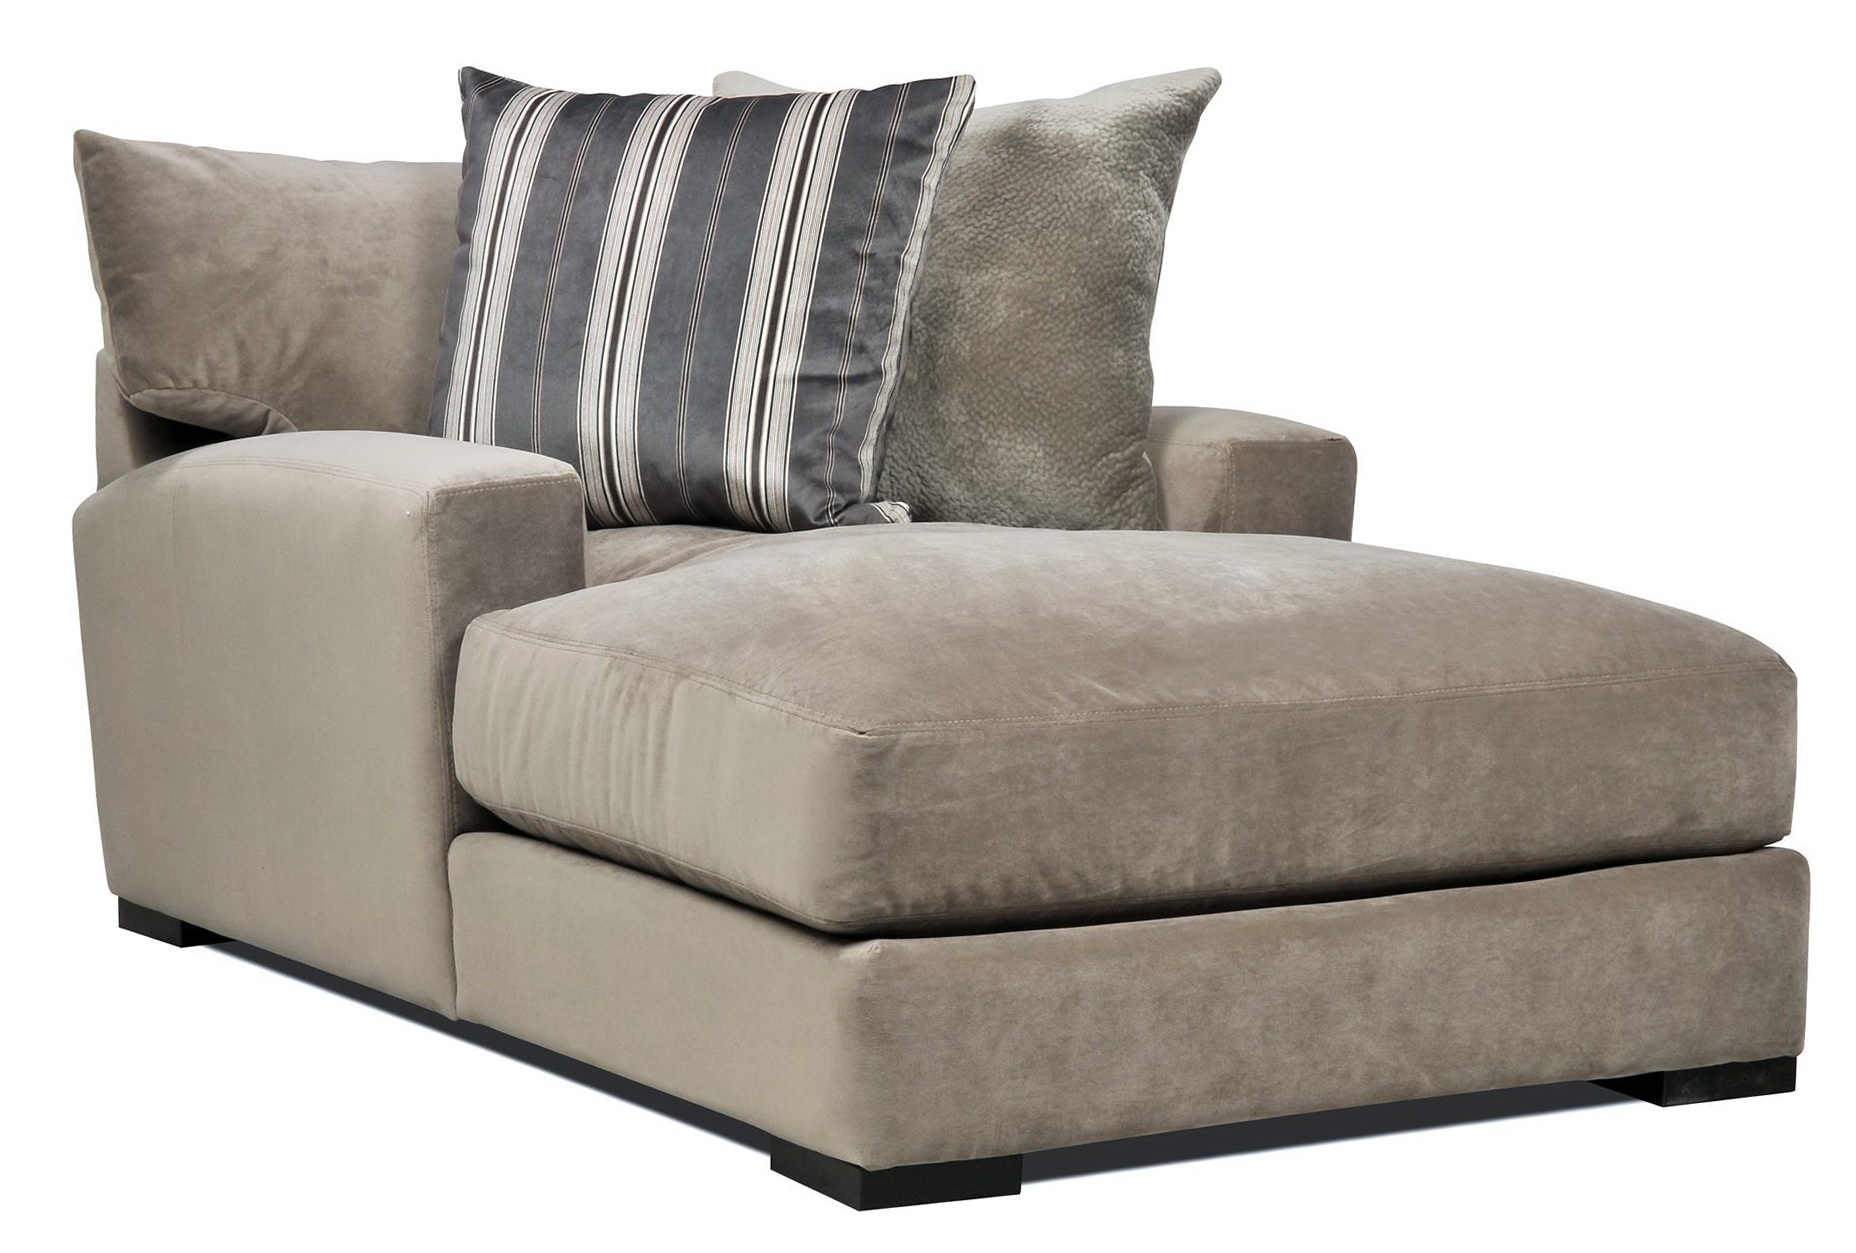 Chaise Lounge Chairs For Two Inside Most Popular Double Wide Chaise Lounge Indoor With 2 Cushions (View 3 of 15)